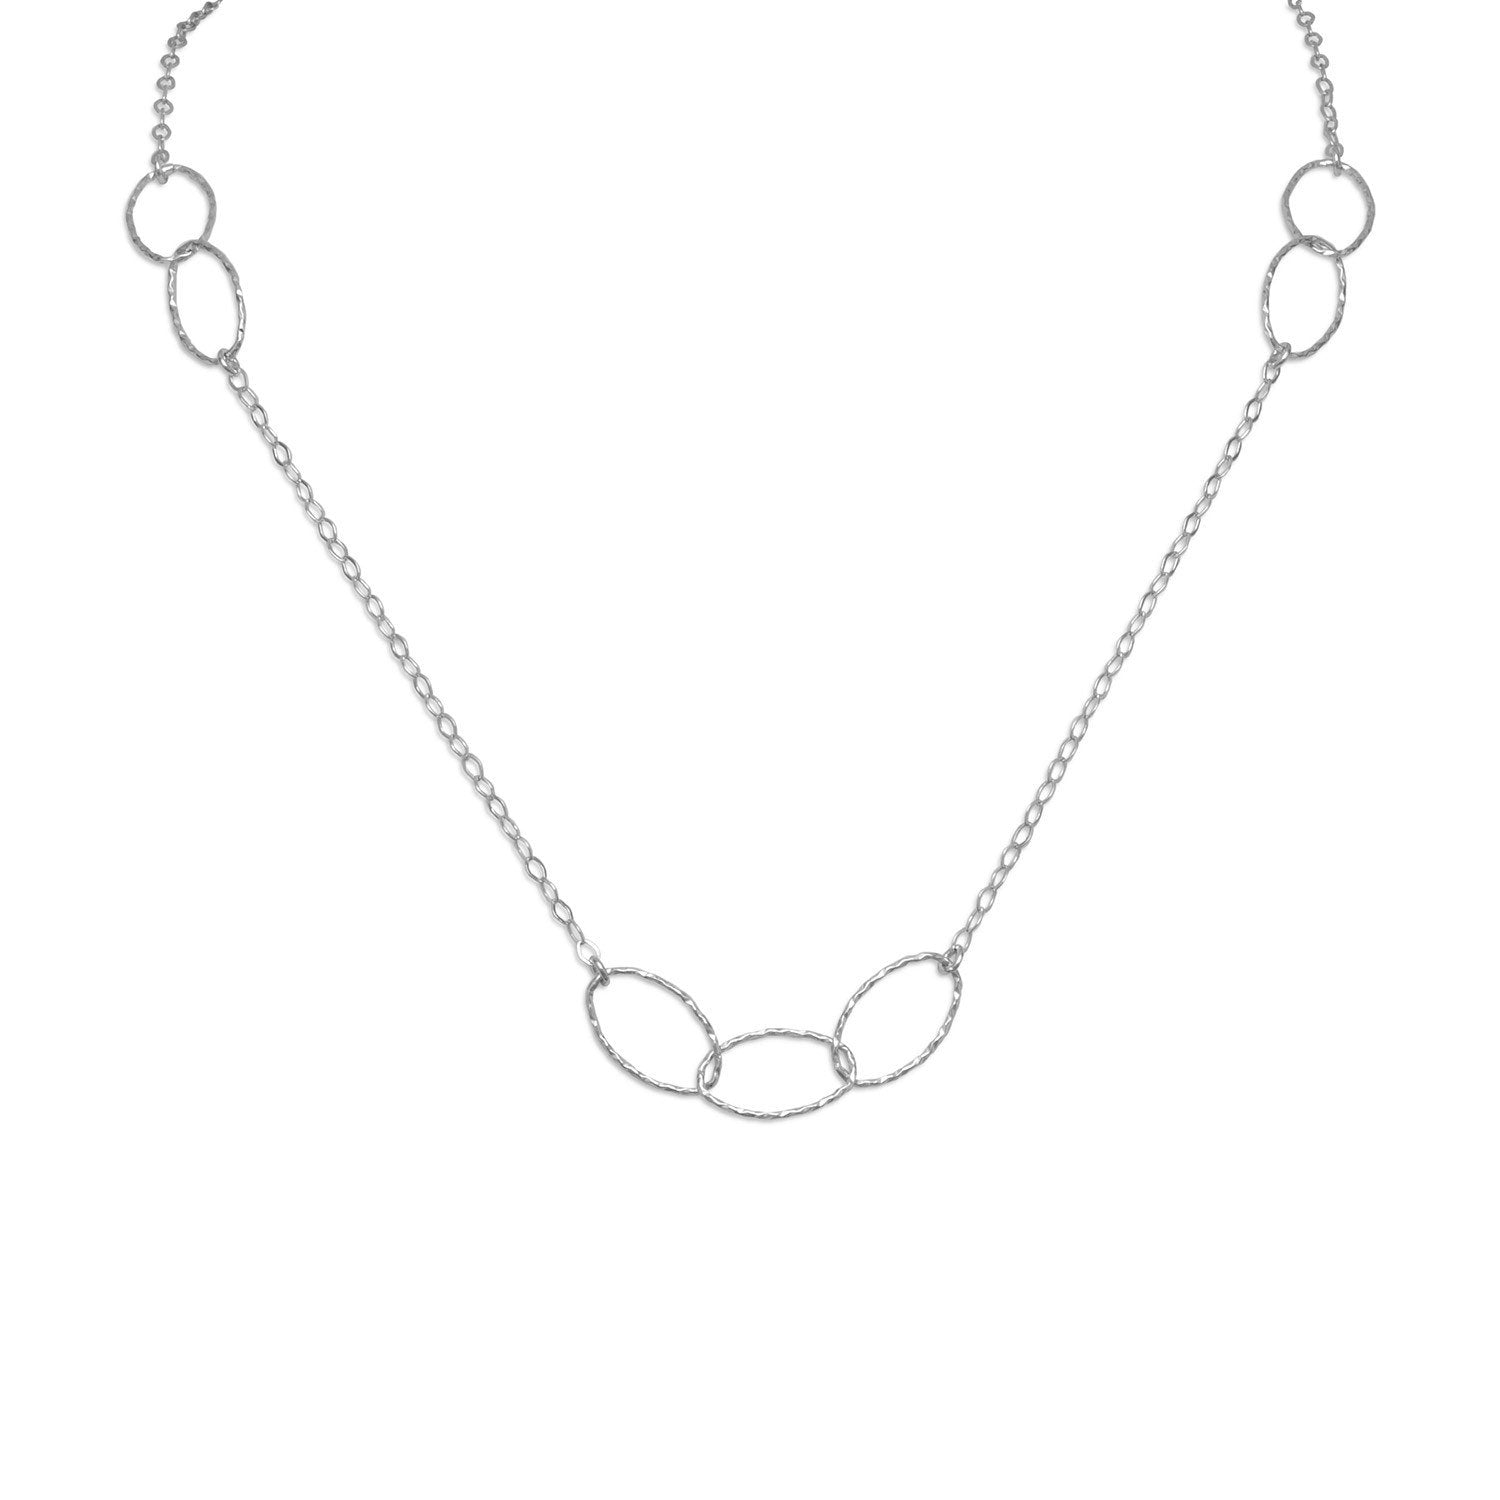 "Trendy 27.5"" Rhodium Plated Multisize Oval Link Necklace - Rocky Mt. Outlet Inc - Shop & Save 24/7"